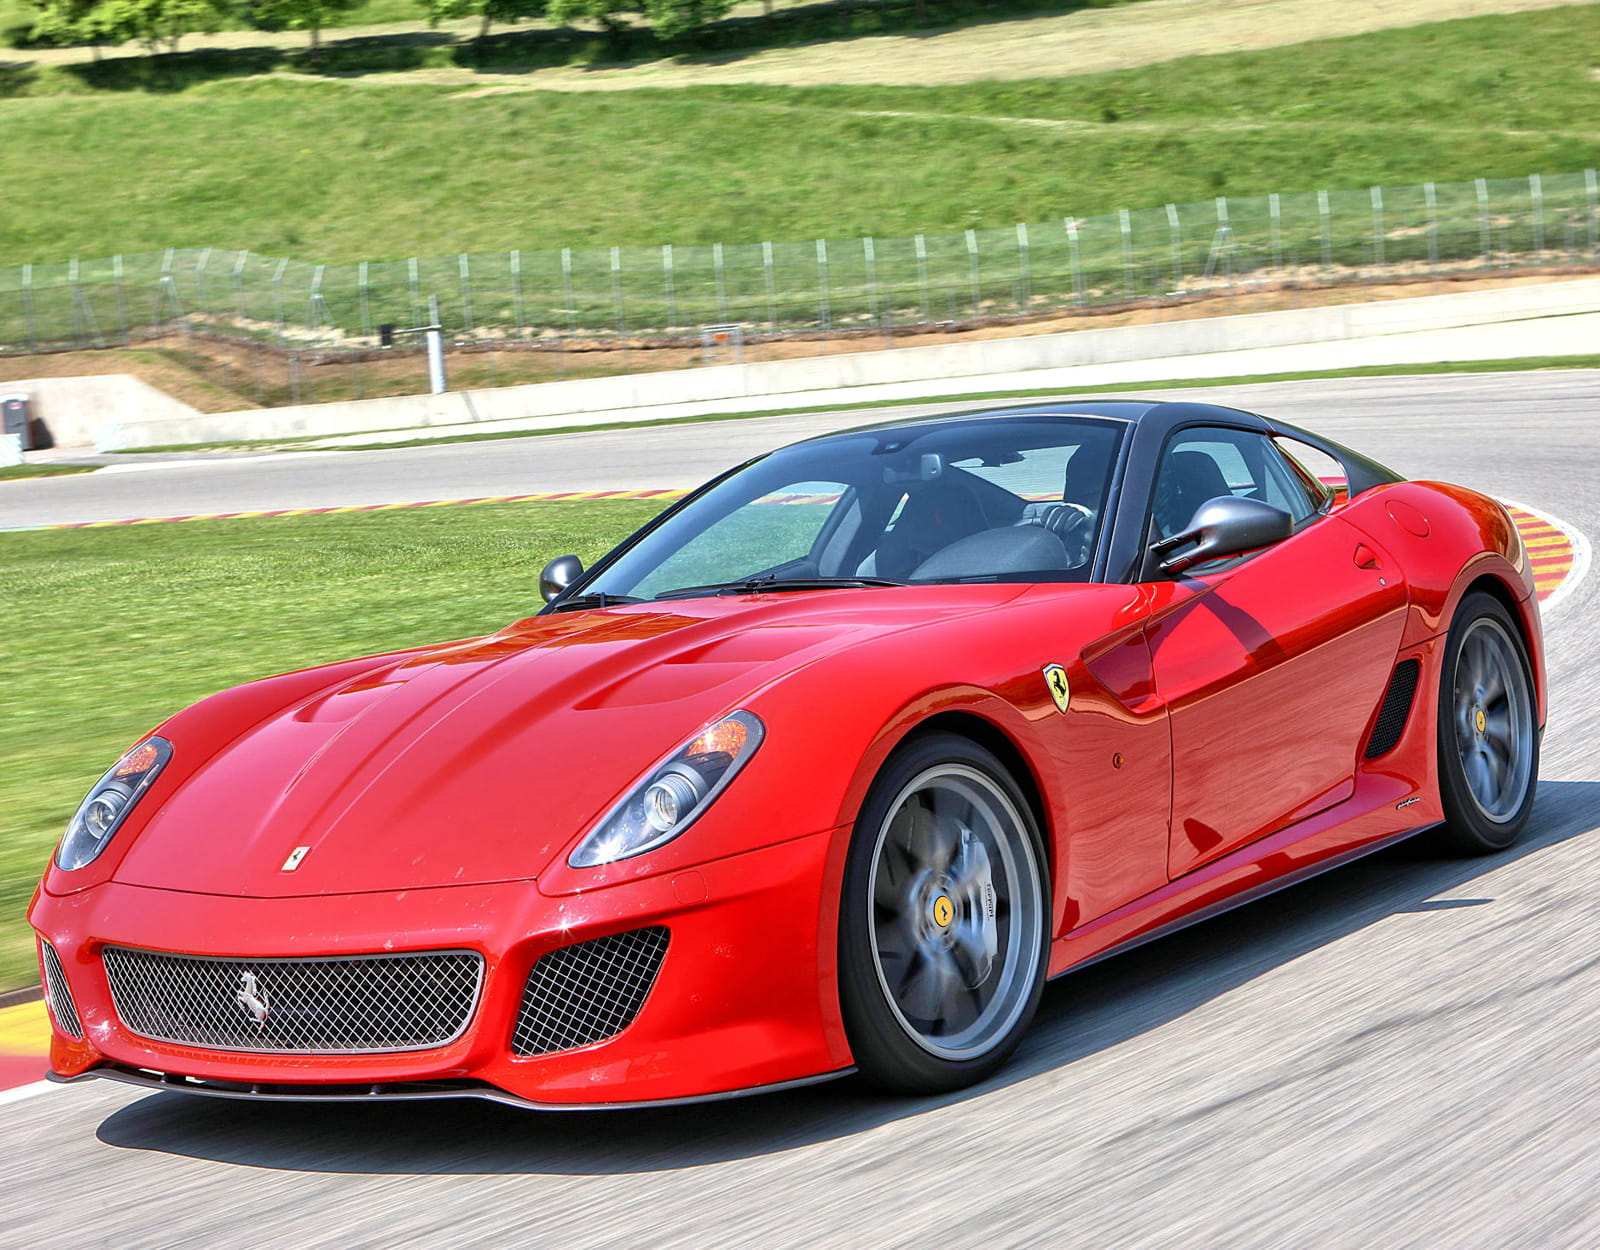 ferrari 599 gto 335 km h les voitures les plus rapides du monde linternaute. Black Bedroom Furniture Sets. Home Design Ideas